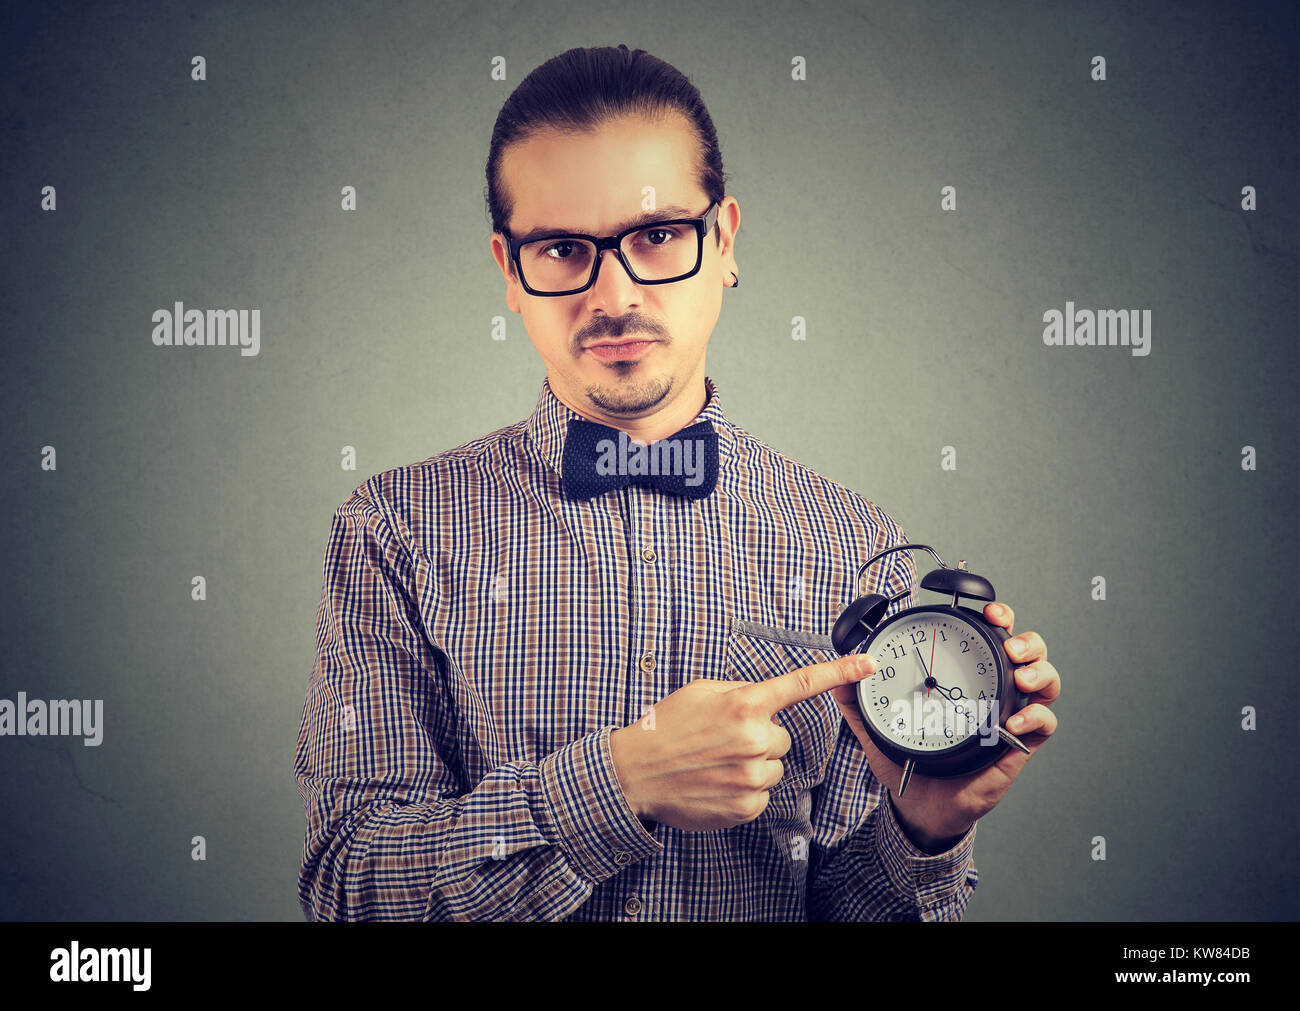 Formal man in eyeglasses reminding about punctuality pointing at clock and looking at camera. - Stock Image